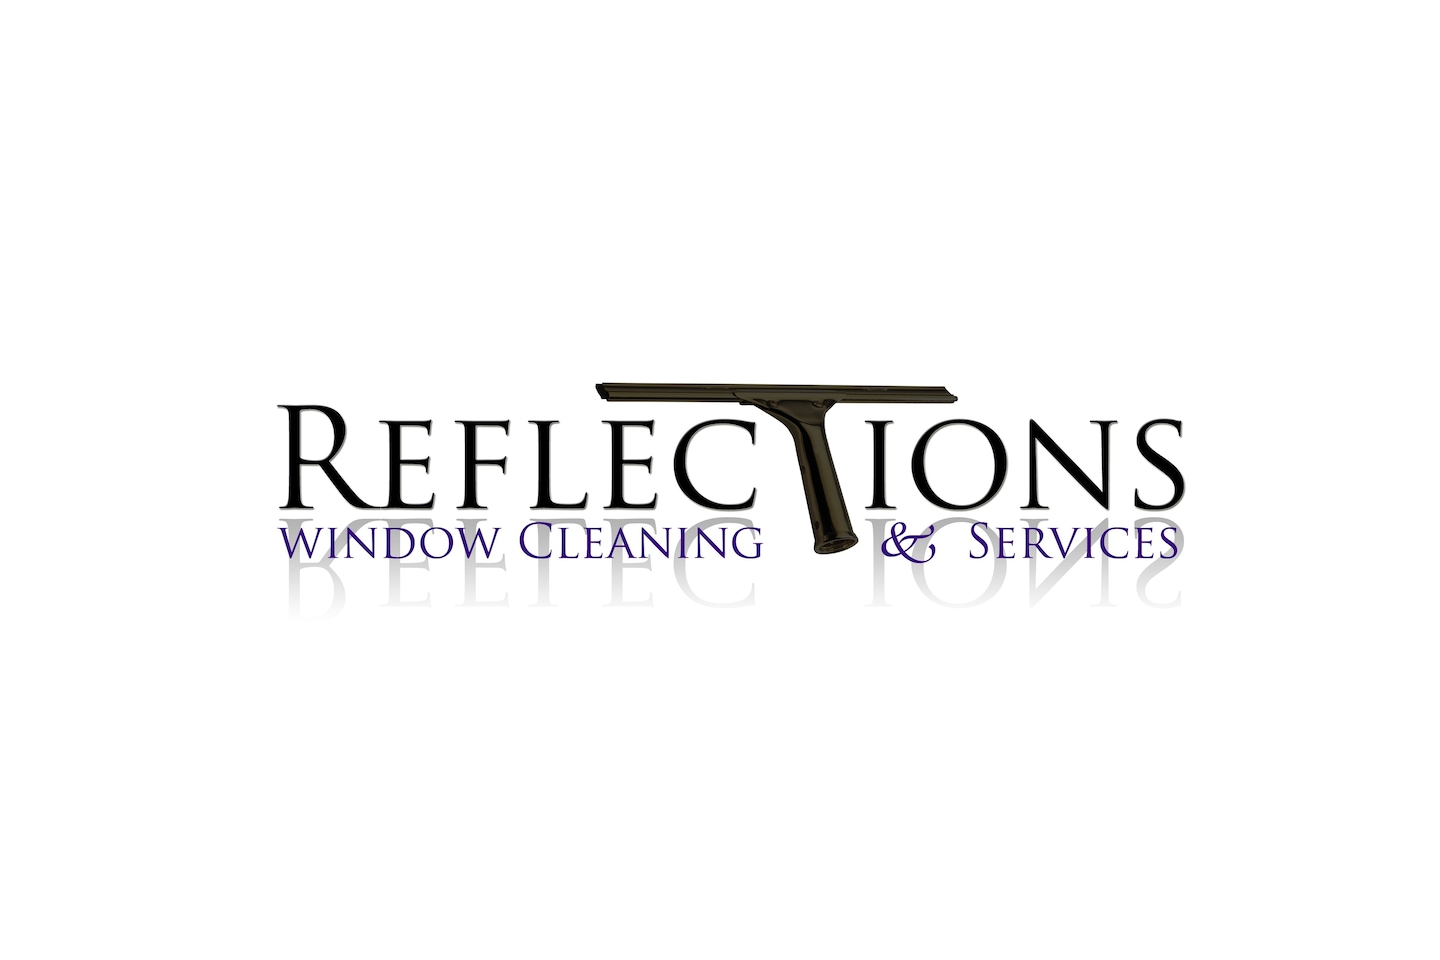 Reflections Limited